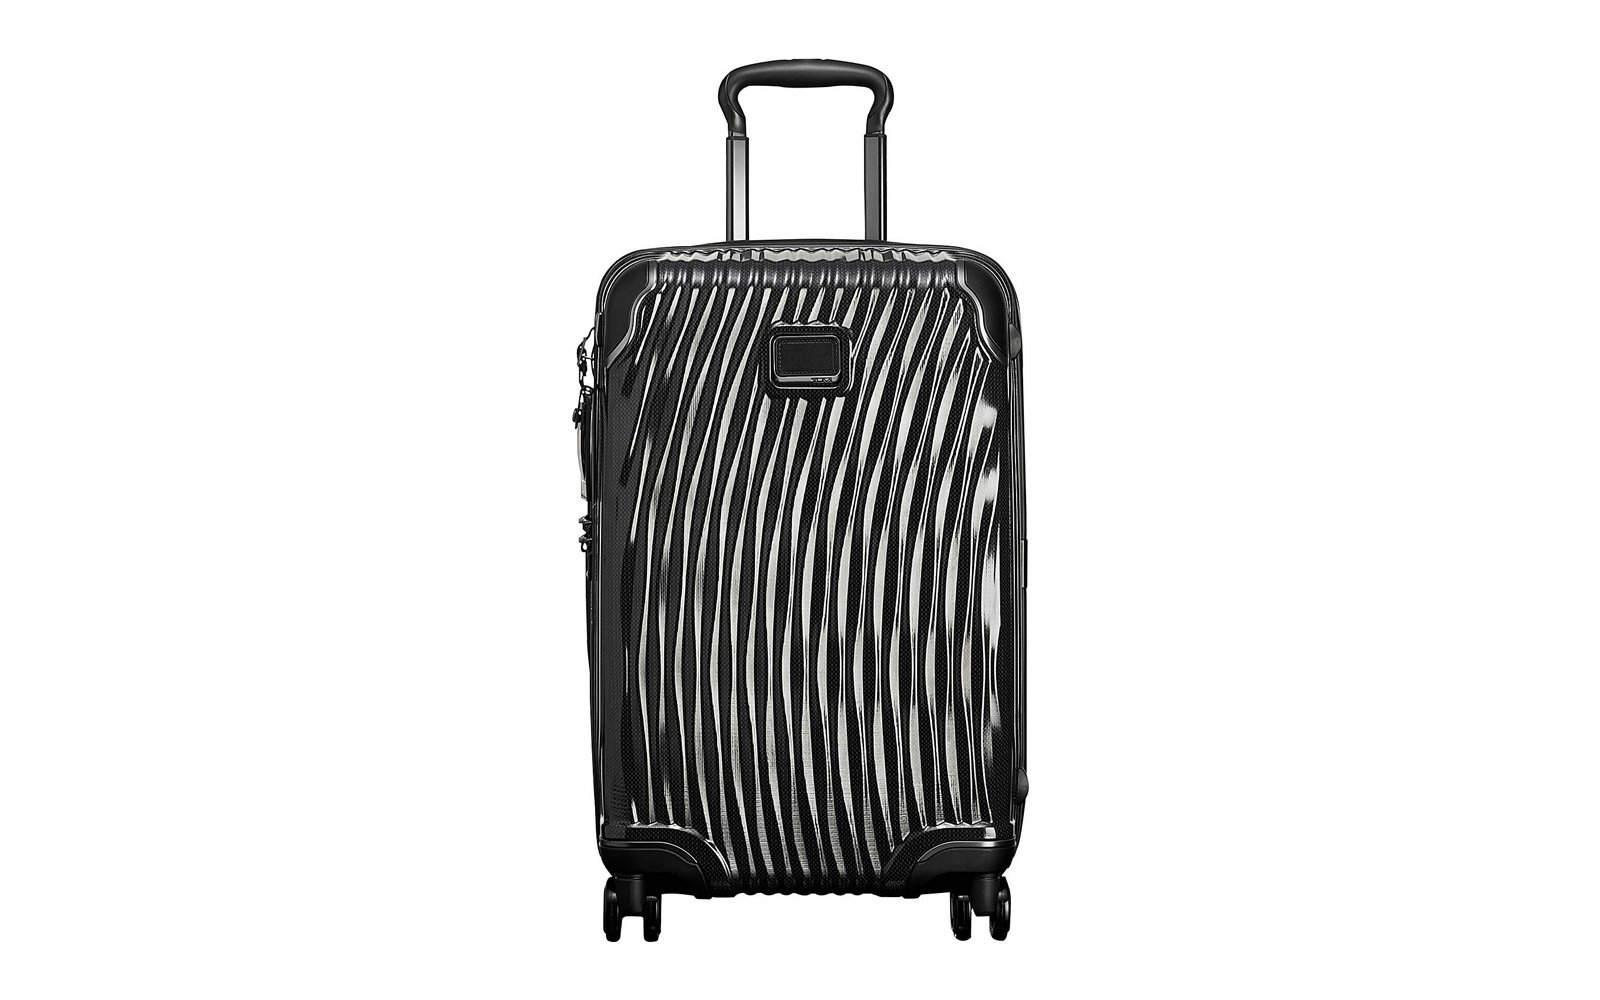 4b6361aeff0f The Best Lightweight Luggage You Can Buy in 2019 | Travel + Leisure